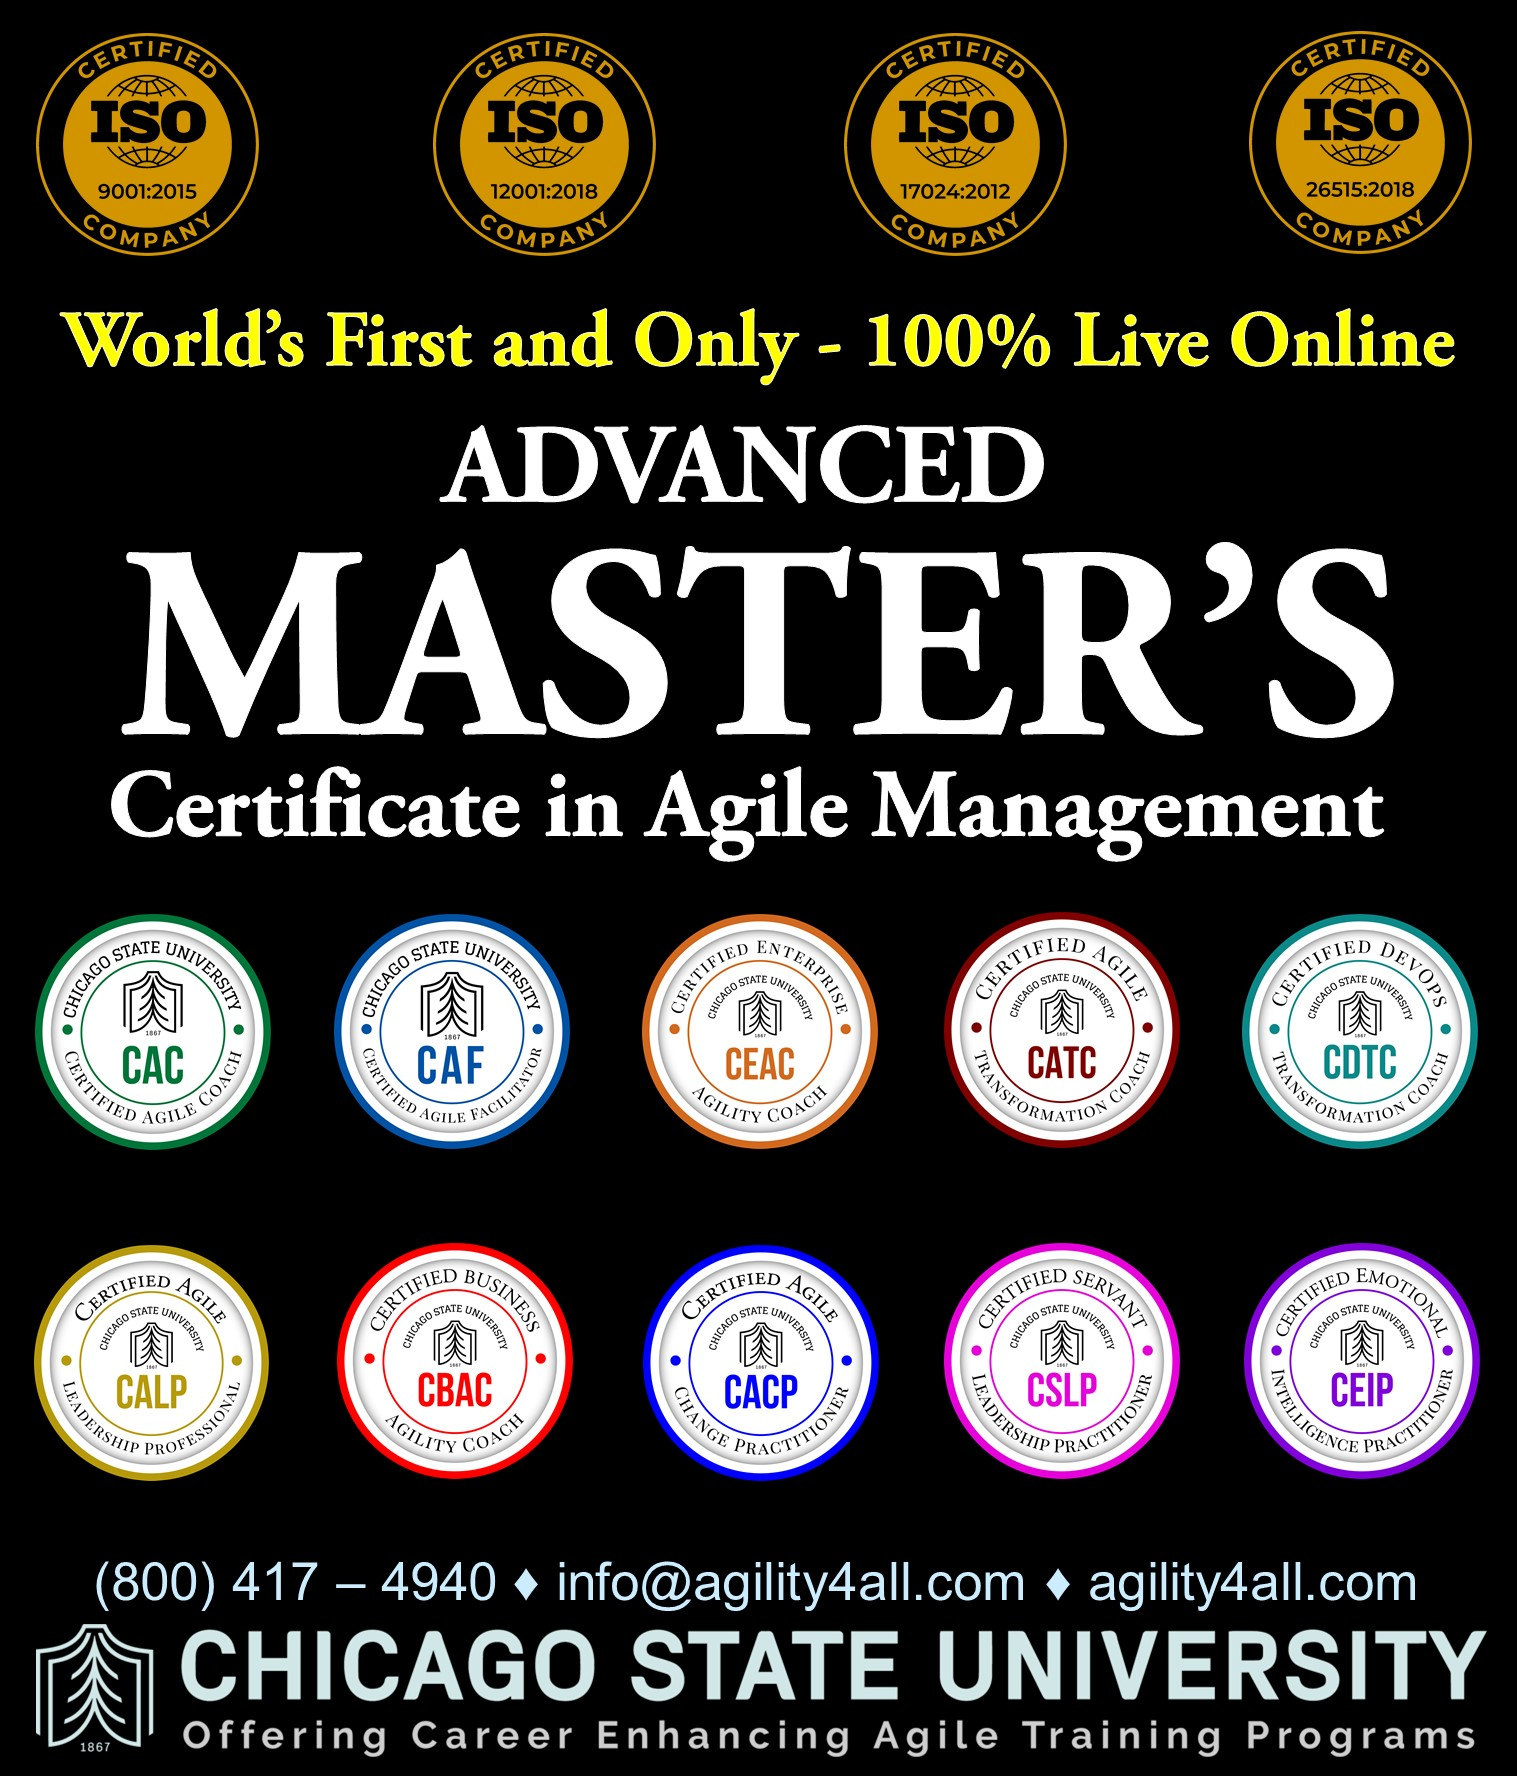 Agile Training Programs from Chicago State University